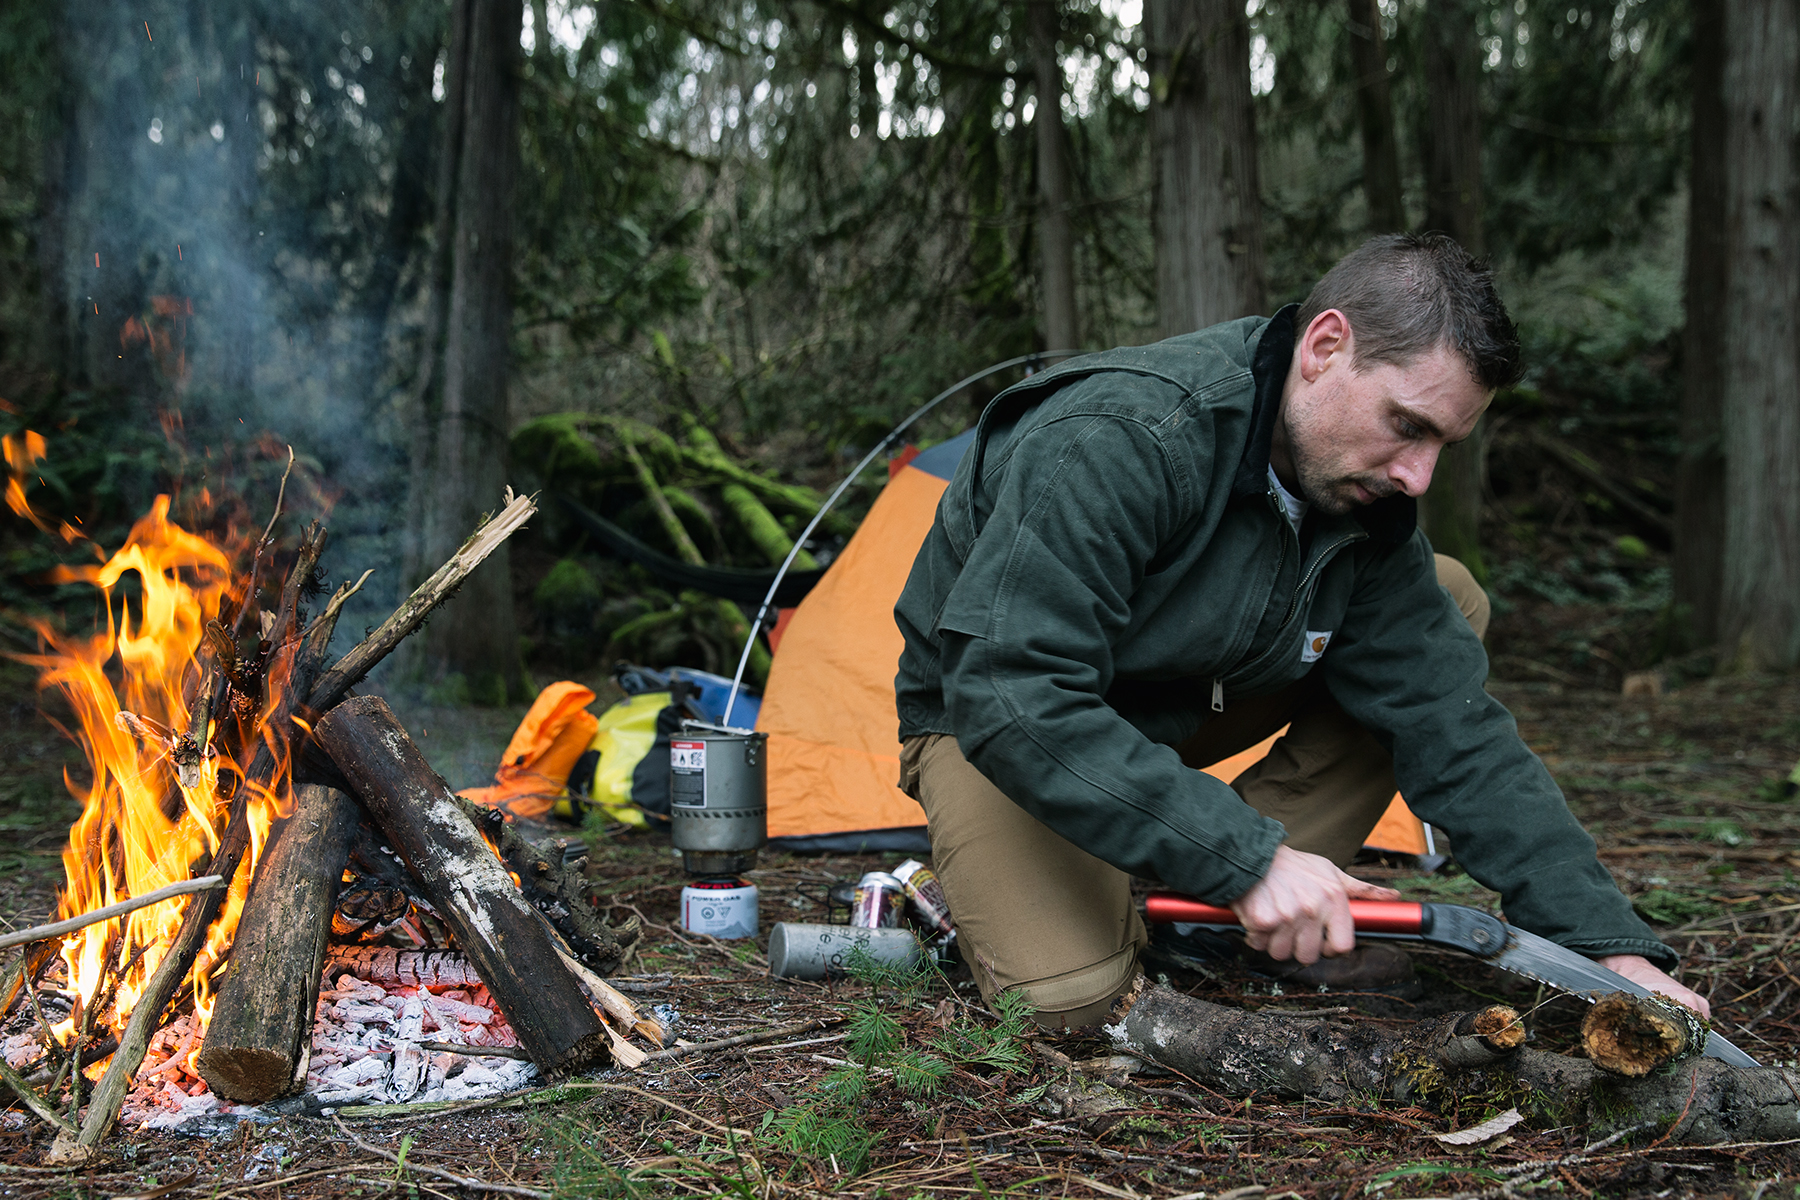 8 Things not to forget on your Camping Trip*